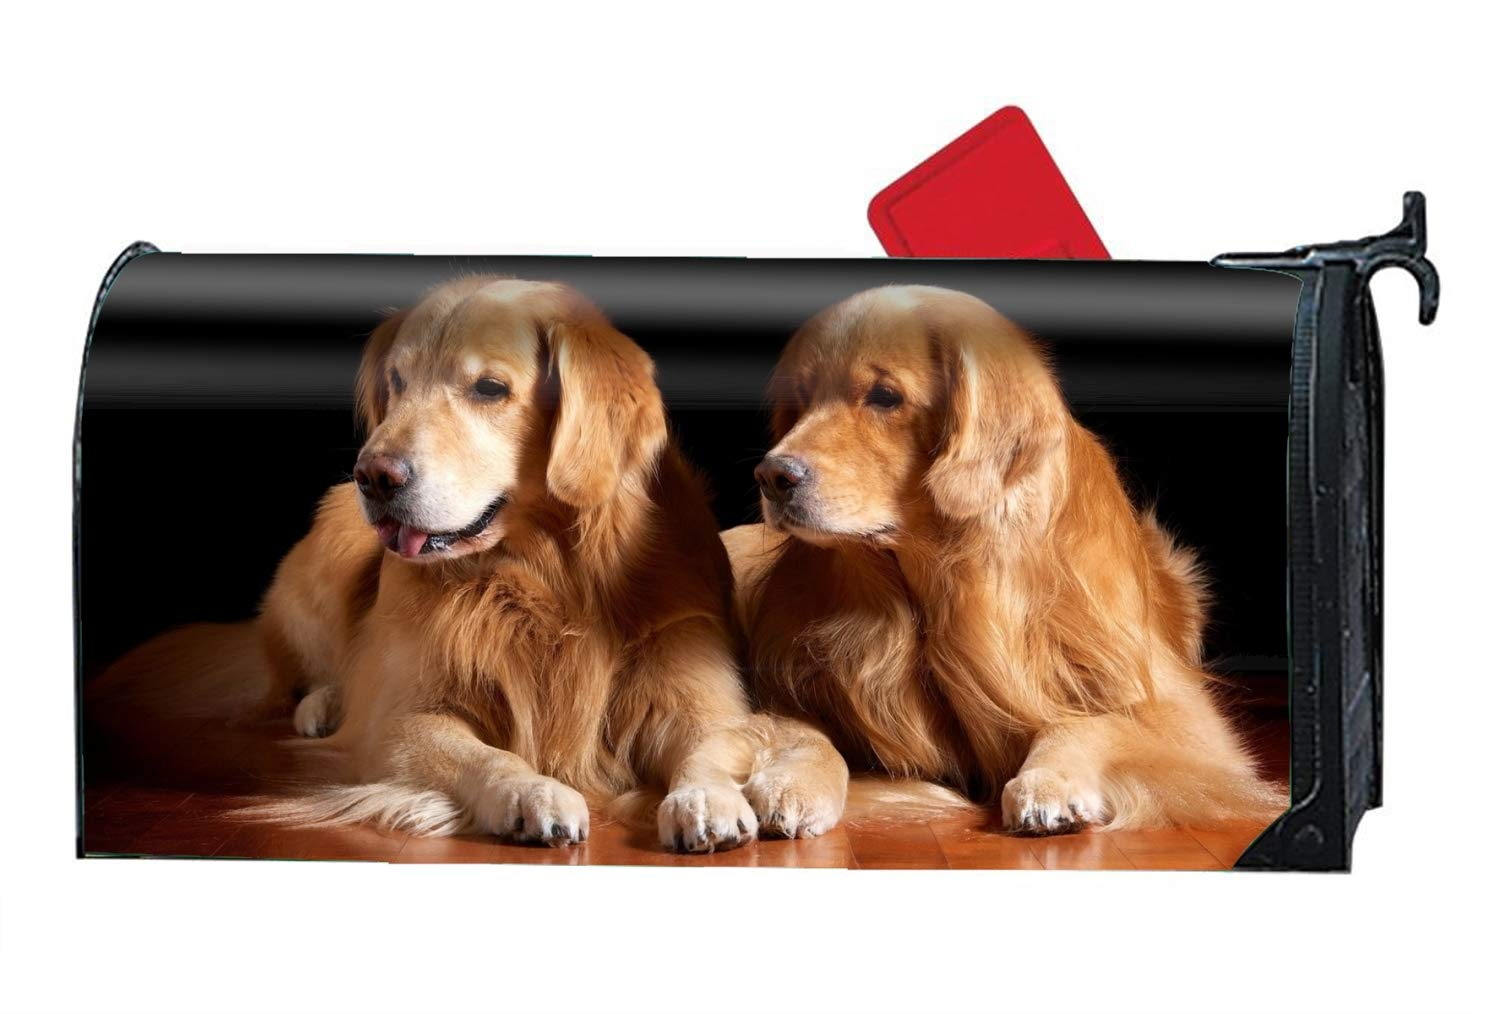 Taocaihop Animal Golden Retriever Dogs Puppy Mailbox Cover - Mailbox Makeover - Magnetic Cover 9'' W x 21'' L